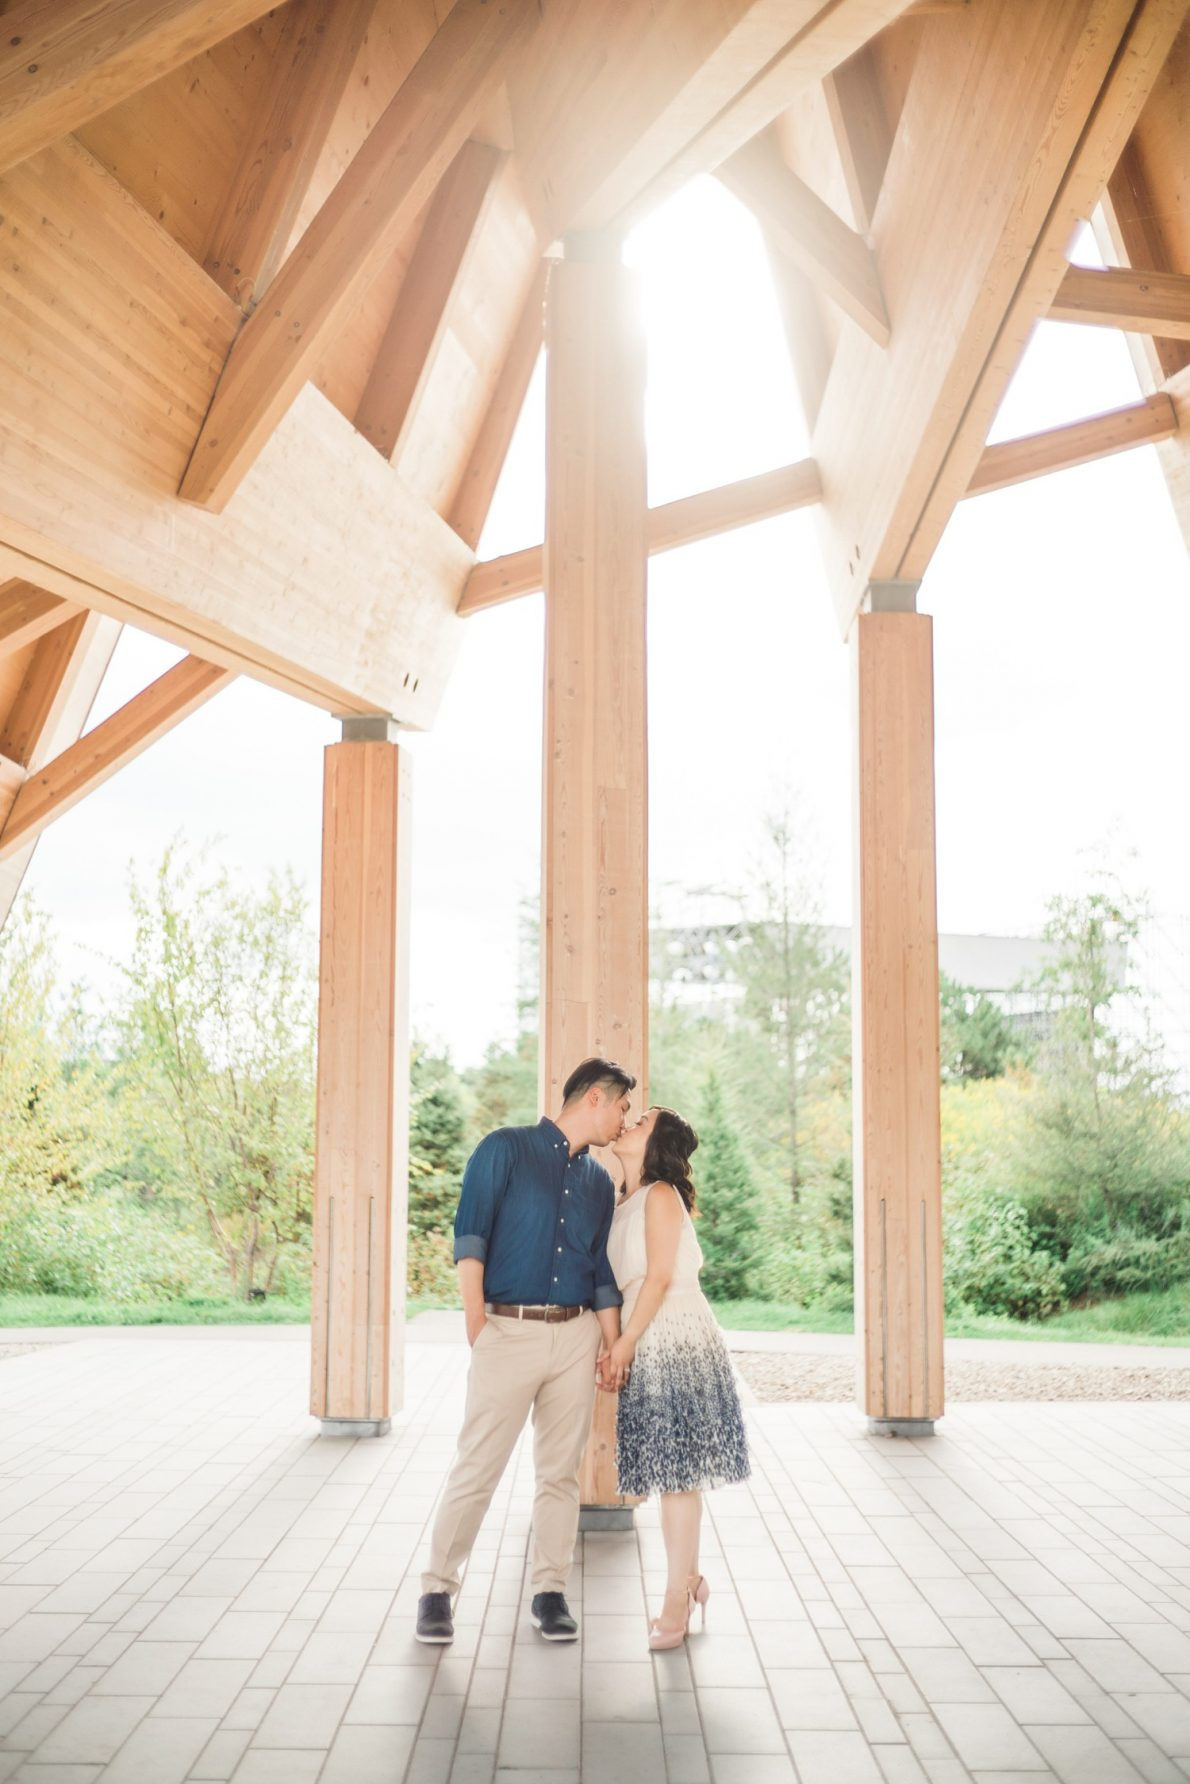 Trillium_Park_Toronto_Destination_Engagement_Photos-Rhythm_Photography_California_Arizona